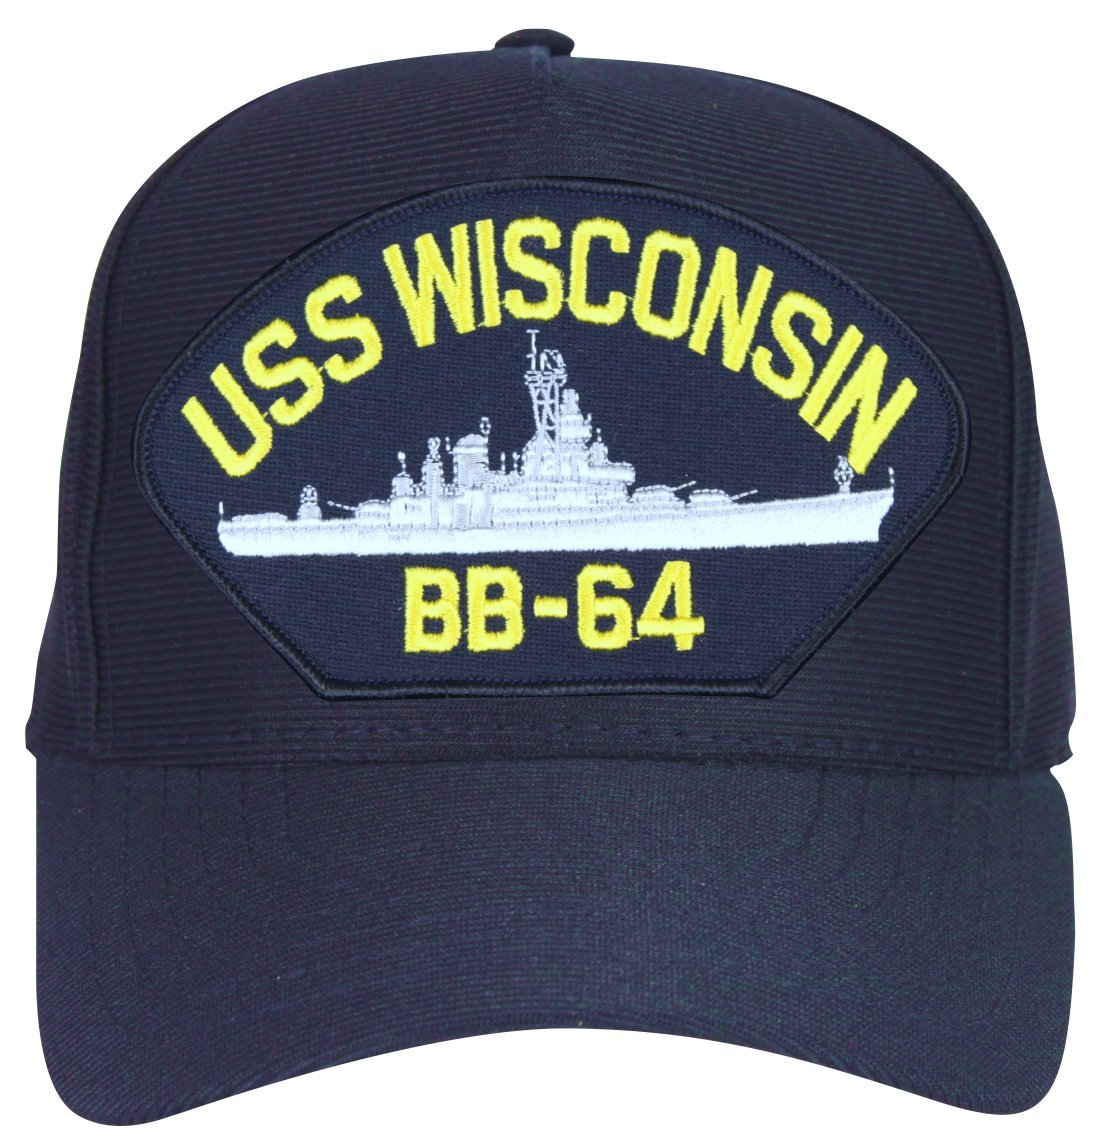 3fe9065af07 Militarybest uss wisconsin ship cap with custom back text sports outdoors  jpg 1102x1140 Official navy ball